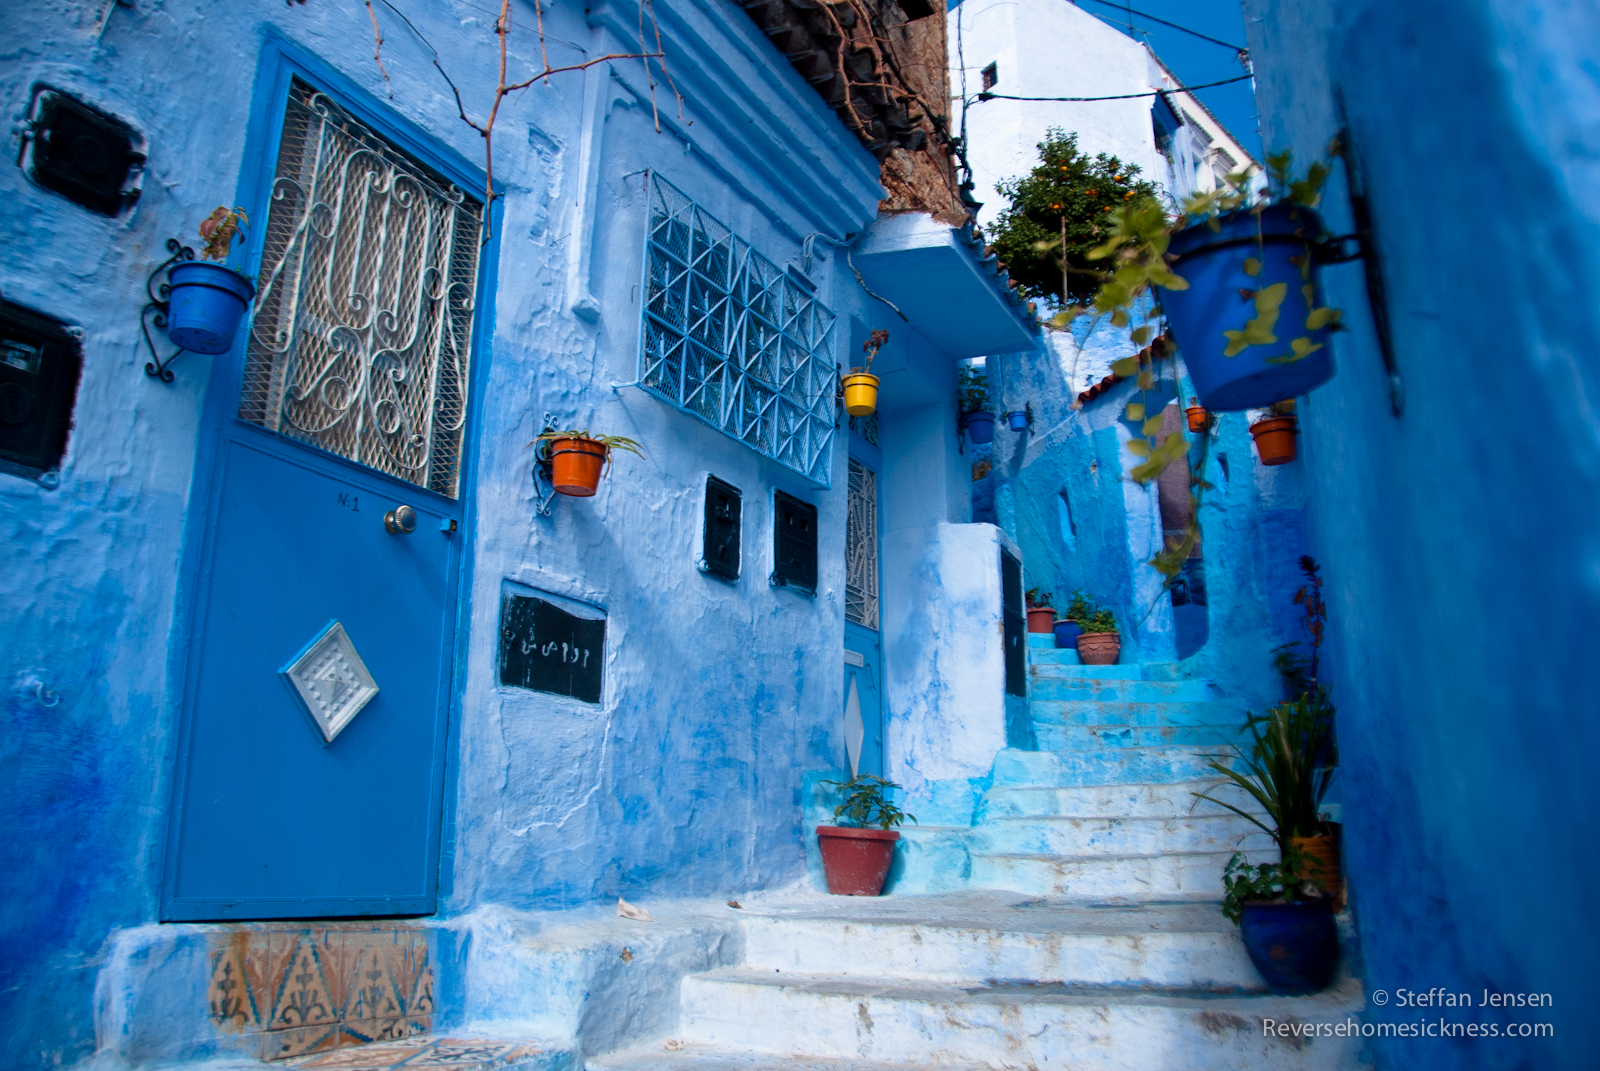 Best MOROCCOCHEFCHAOUEN Images On Pinterest Morocco - Old town morocco entirely blue